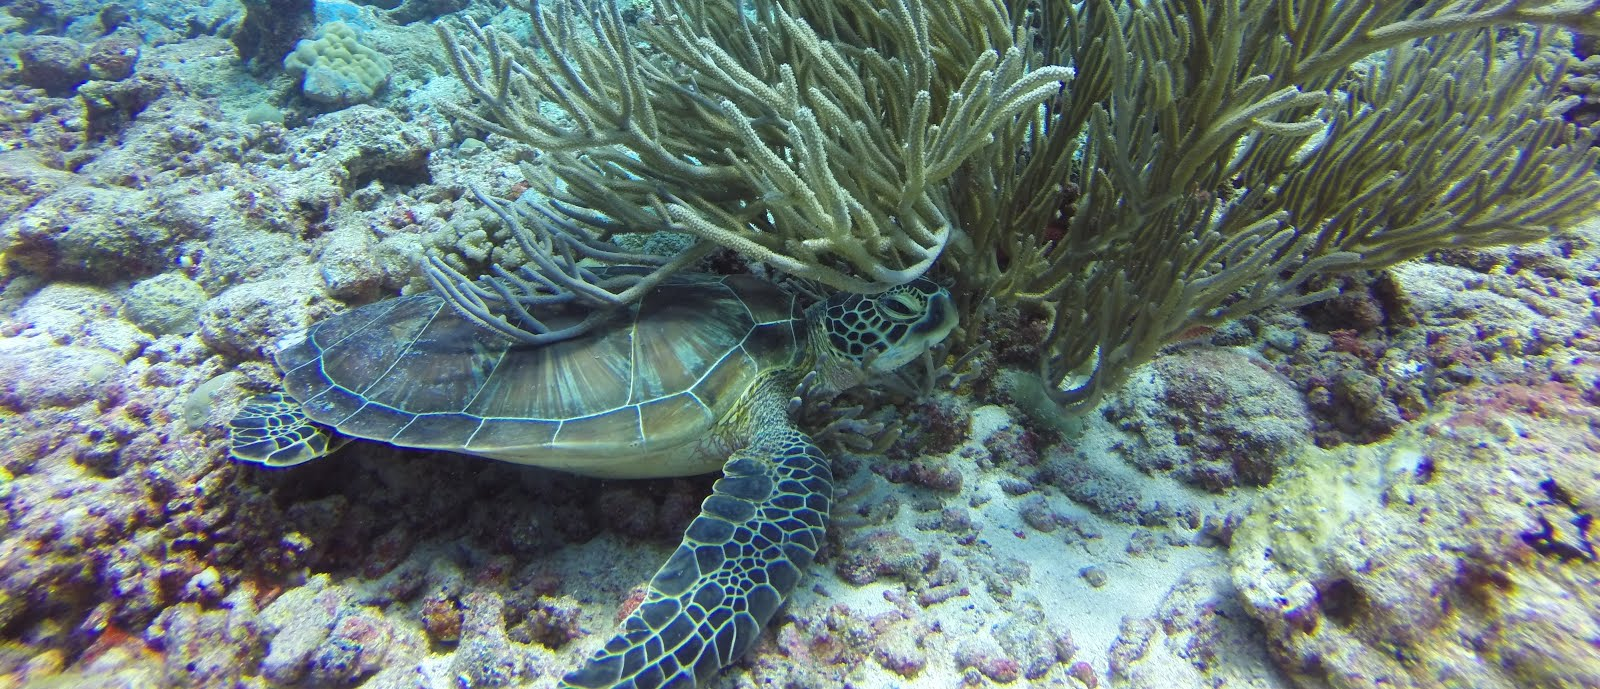 Turtle chilling on the reef, Palau